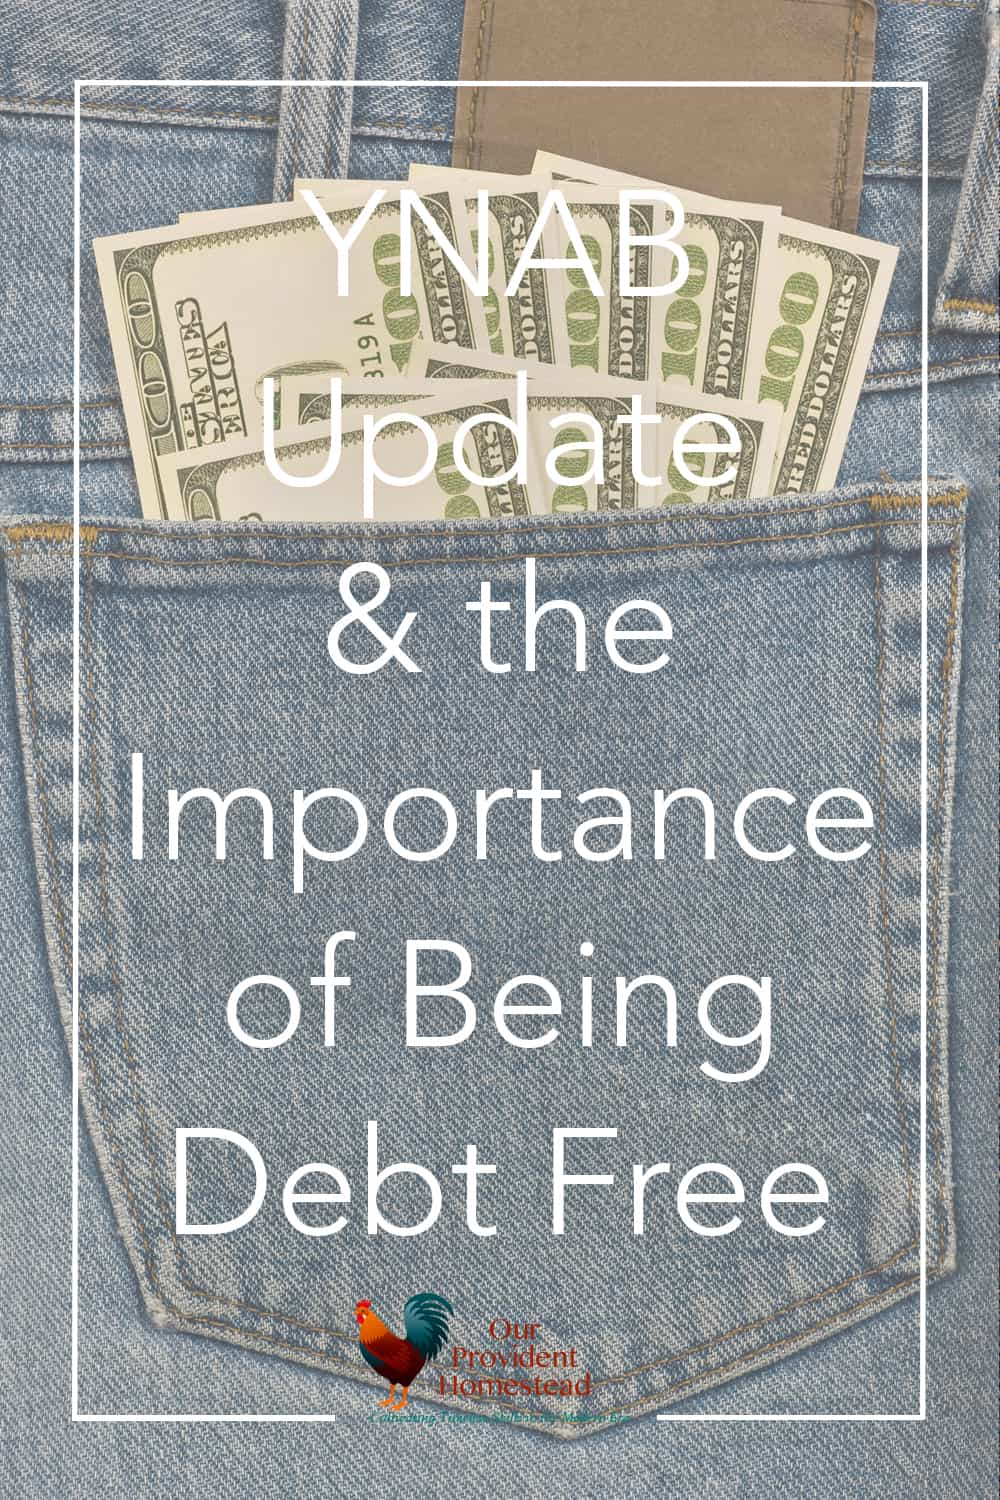 Do you dream of living debt free? We want to share YNAB with you and discuss 7 reasons why living debt free is a goal worth working for. #ynab #debtfree #debtfreedom #familyfinances